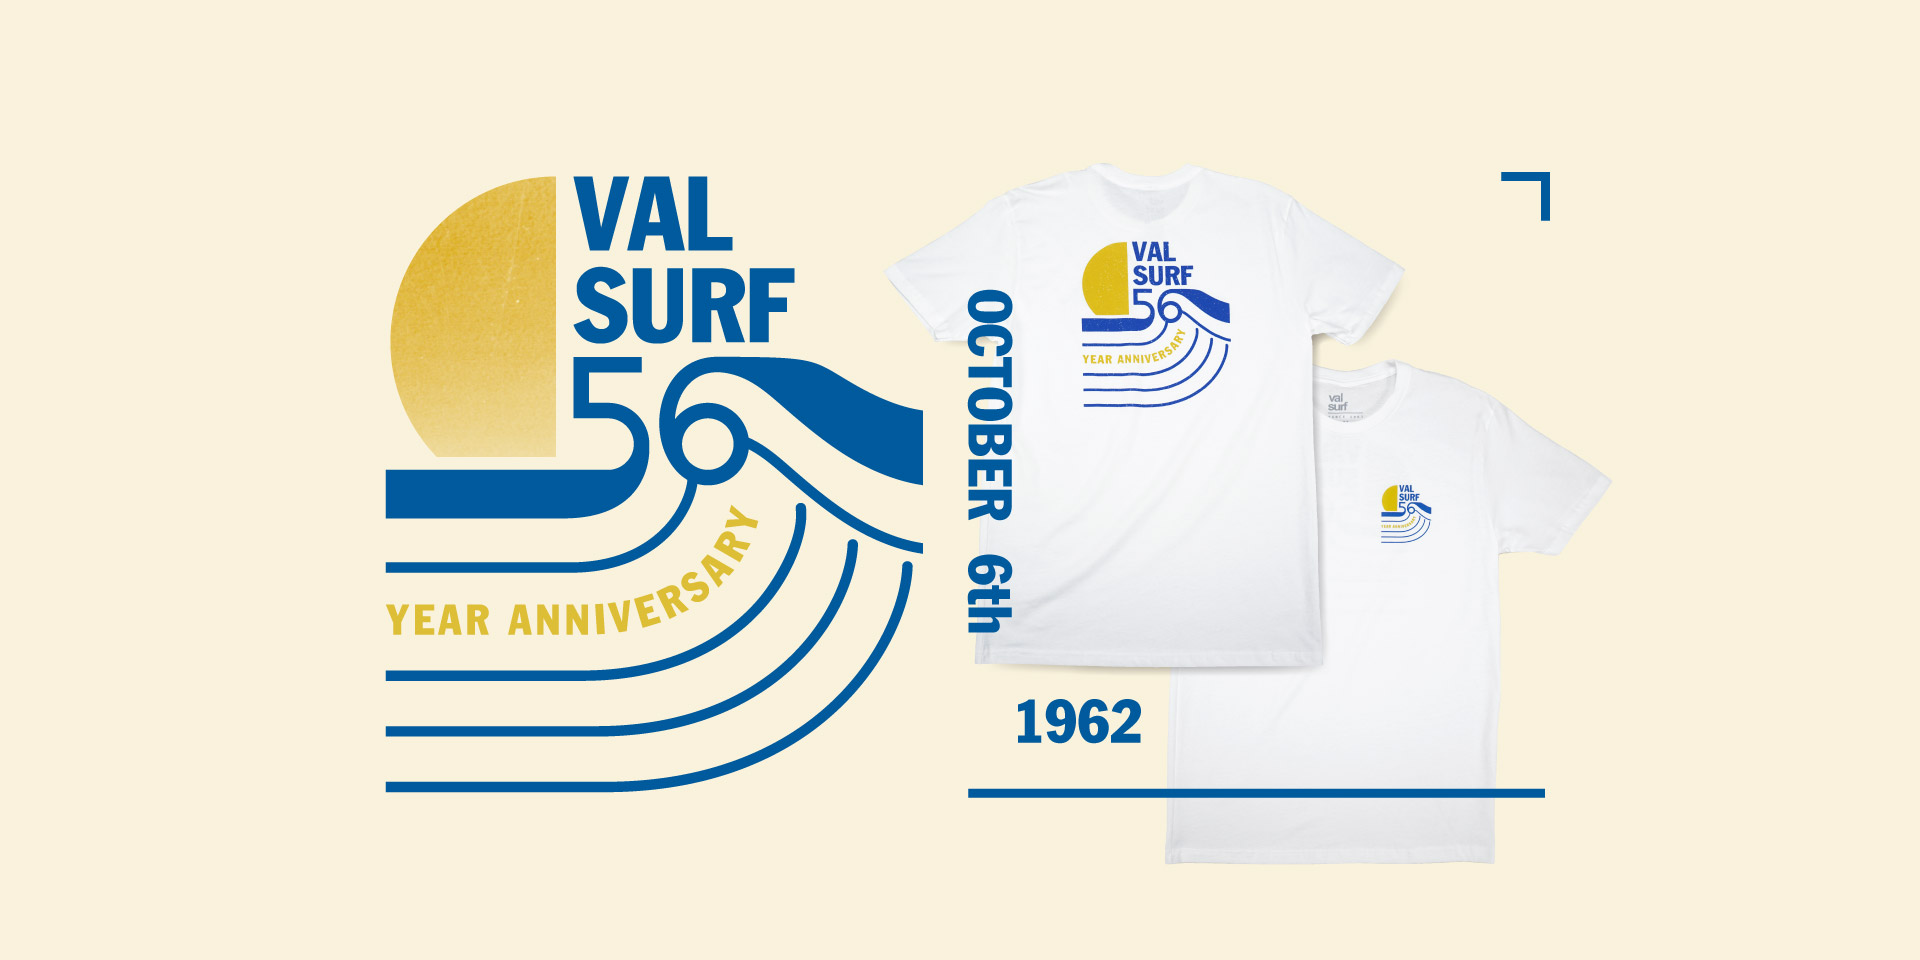 Val Surf 56th Year Anniversary October 6th 1962